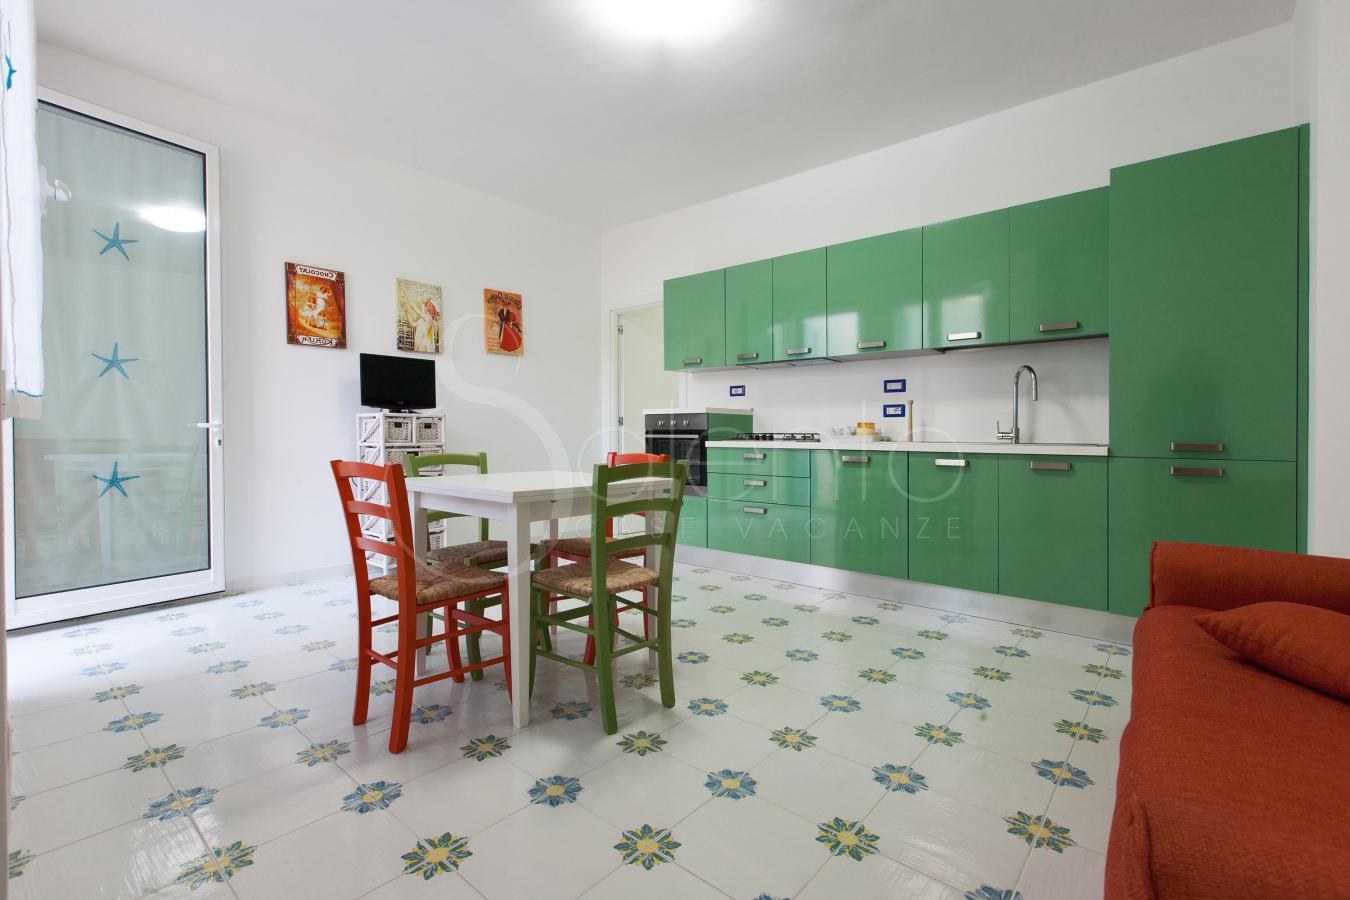 holiday homes - Pescoluse ( Leuca ) - Le Dimore Turchesi - Trilo B